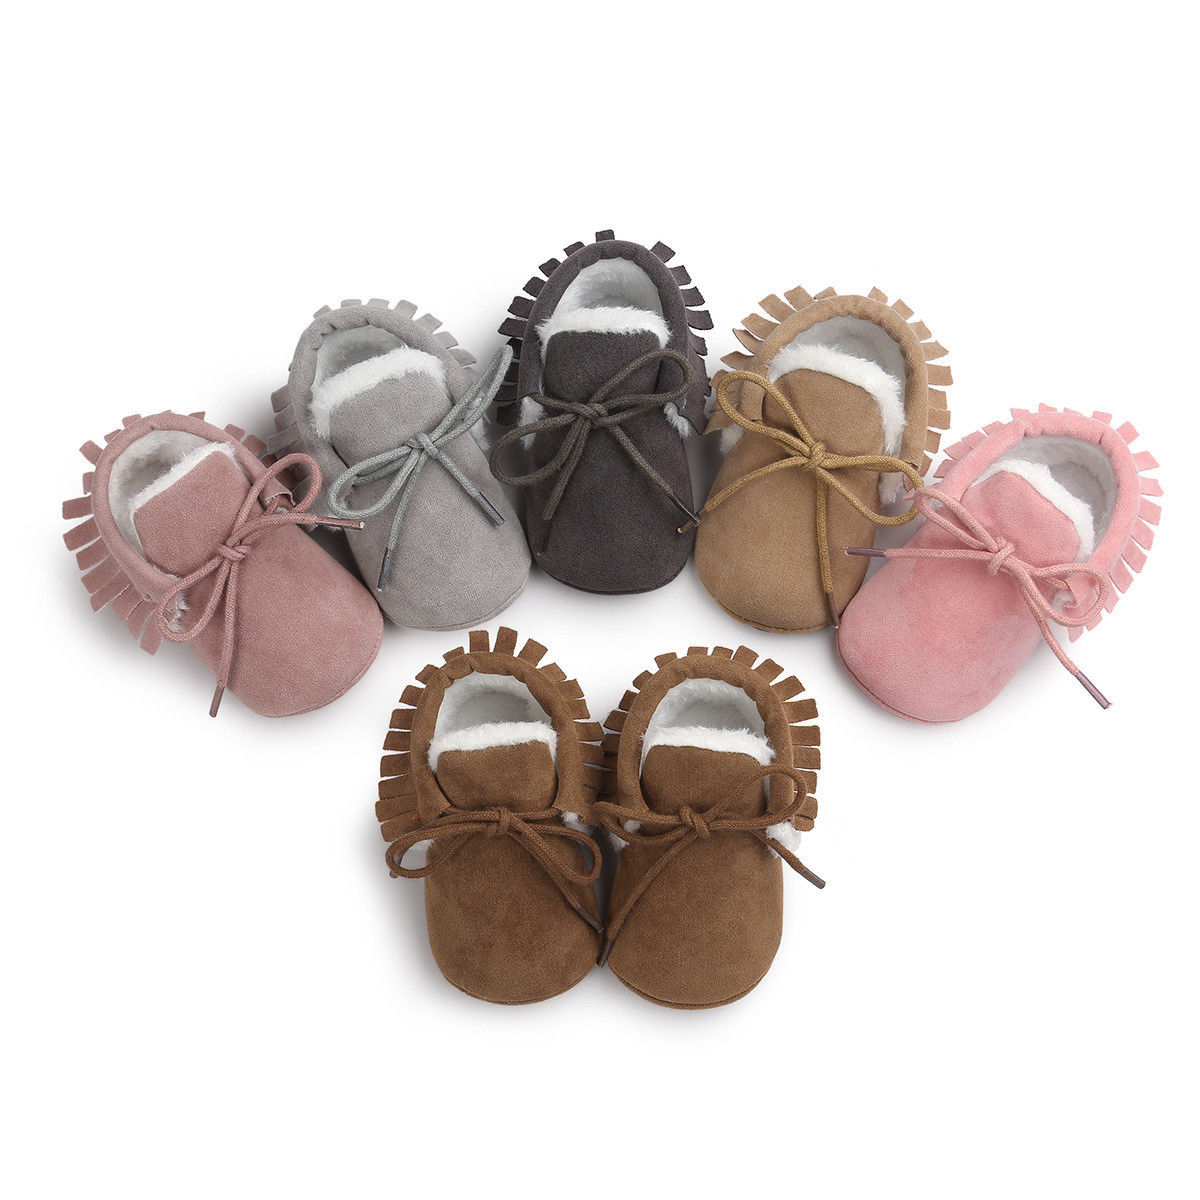 Infant-Toddler-Baby-Boy-Girl-Shoes-Soft-Sole-Sneaker-Crib-Cotton-Inside-Sneaker-Baby-Casual-Shoes-0-18-Months-3